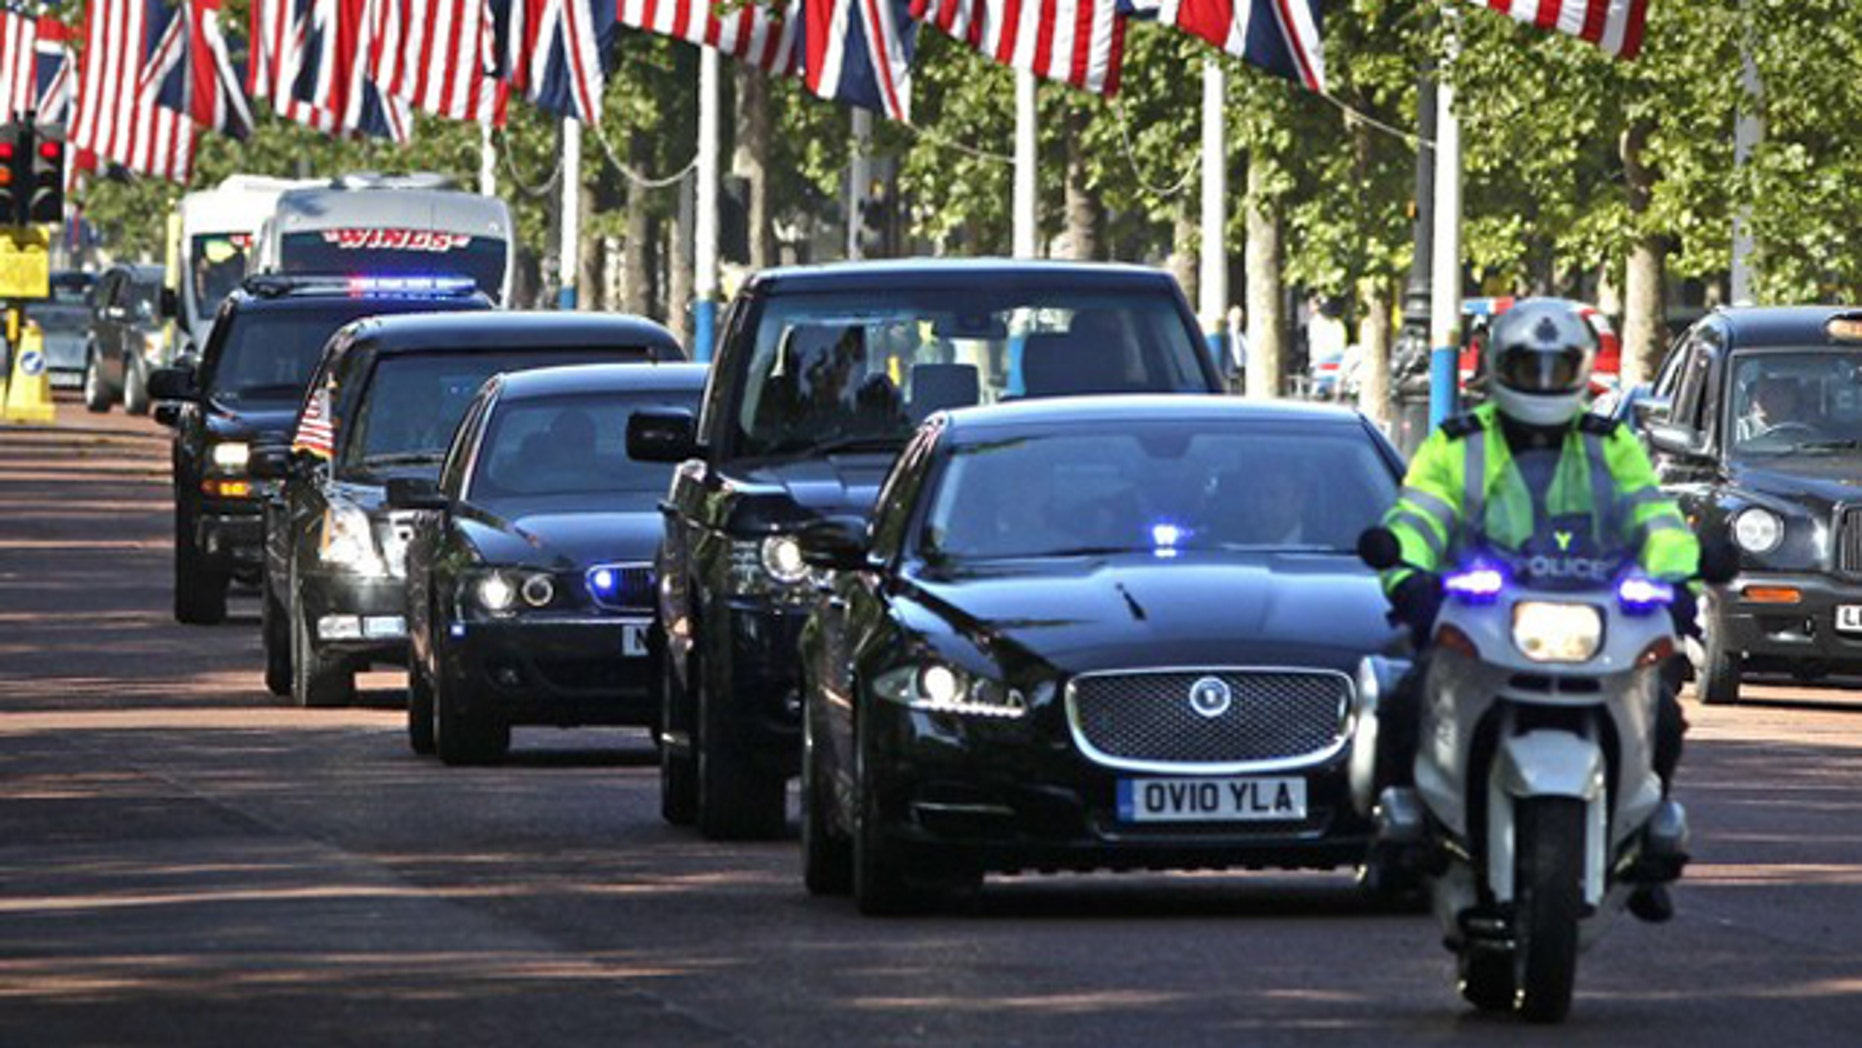 President Obama's motorcade travels along the Mall as it leaves Buckingham Palace to go to Downing Street in central London May 25.